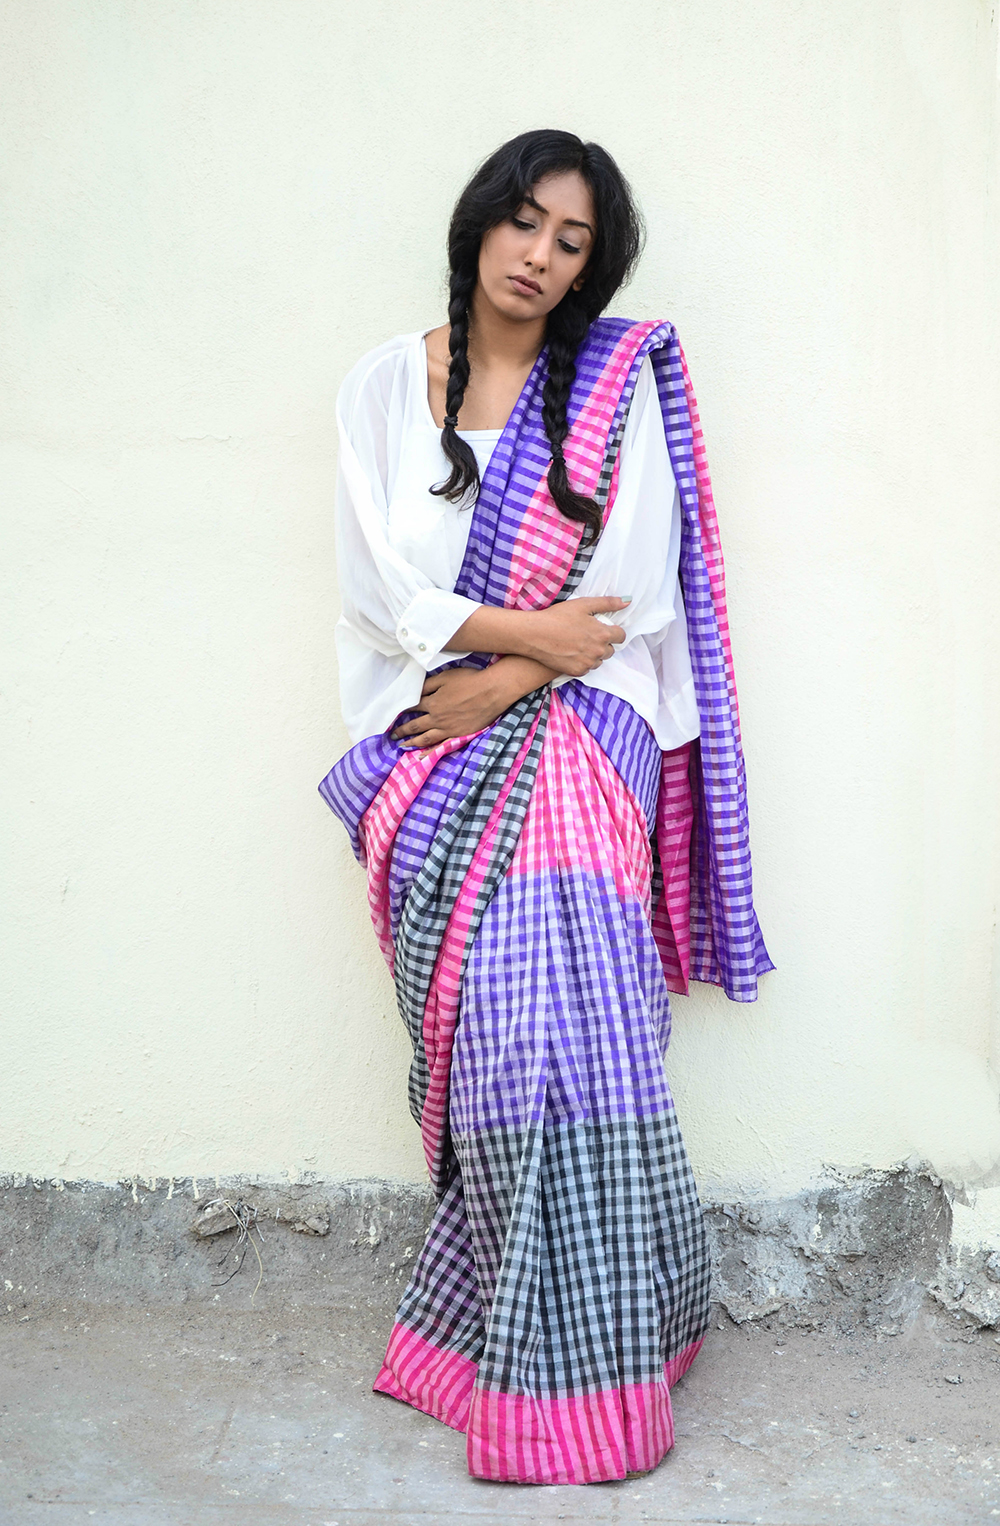 Lookbook ; Sari ; Fusionwear ; Sari with Top ; Checks; Chemistry ; Two braids ; Indian Summer ; runway inspired ; Outfit ; Hyderabad ; fashion photography ; dusk ; editorial ; strong ; Dark ; summer fashion ; summer outfit ; vintage ; spring ; summer 17; boho look ; Naznin ; Naznin Suhaer ; dusky; model ; hyderabad model ; hyderabad blogger ; indian blogger ; hyderabad fashion bloggers ; hyderabad bloggers ; hyderabad fashion blogger ; I Dress for the Applause ;